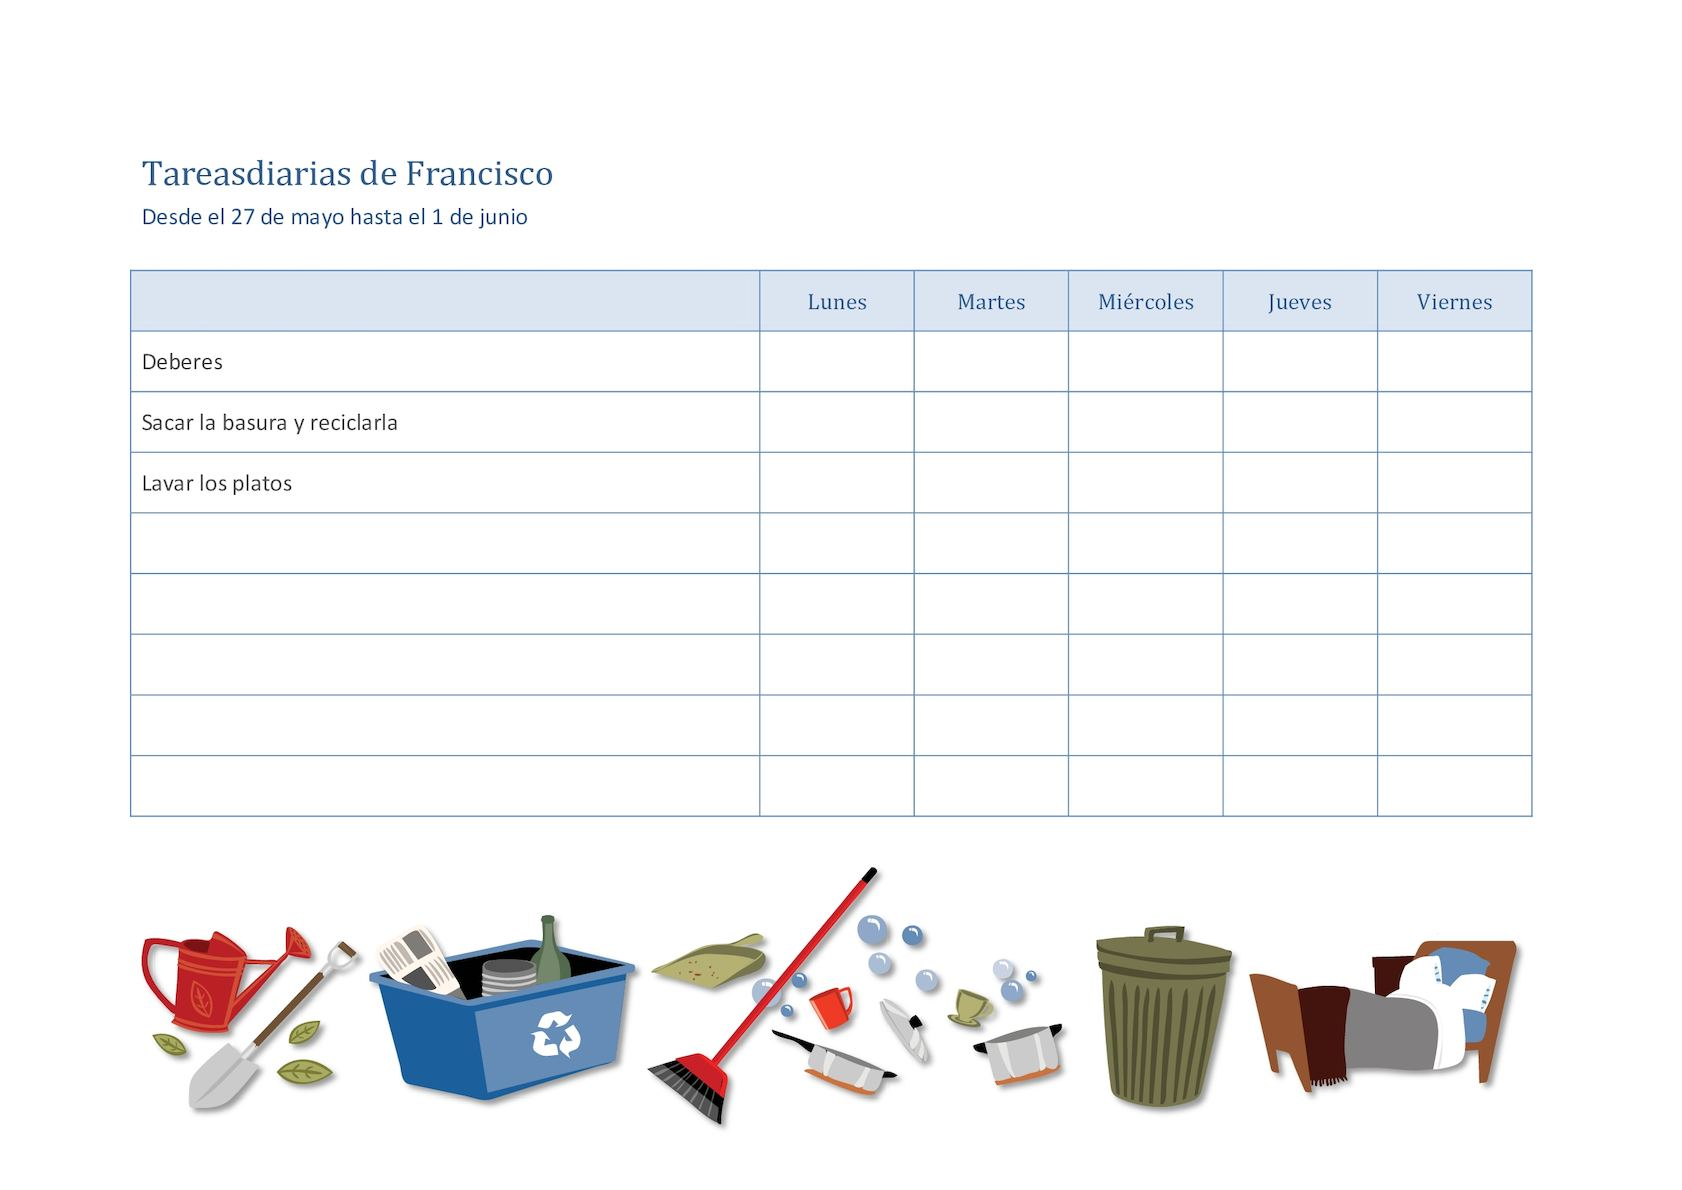 Checklist Benchmarking Considerations  Template amp Sample